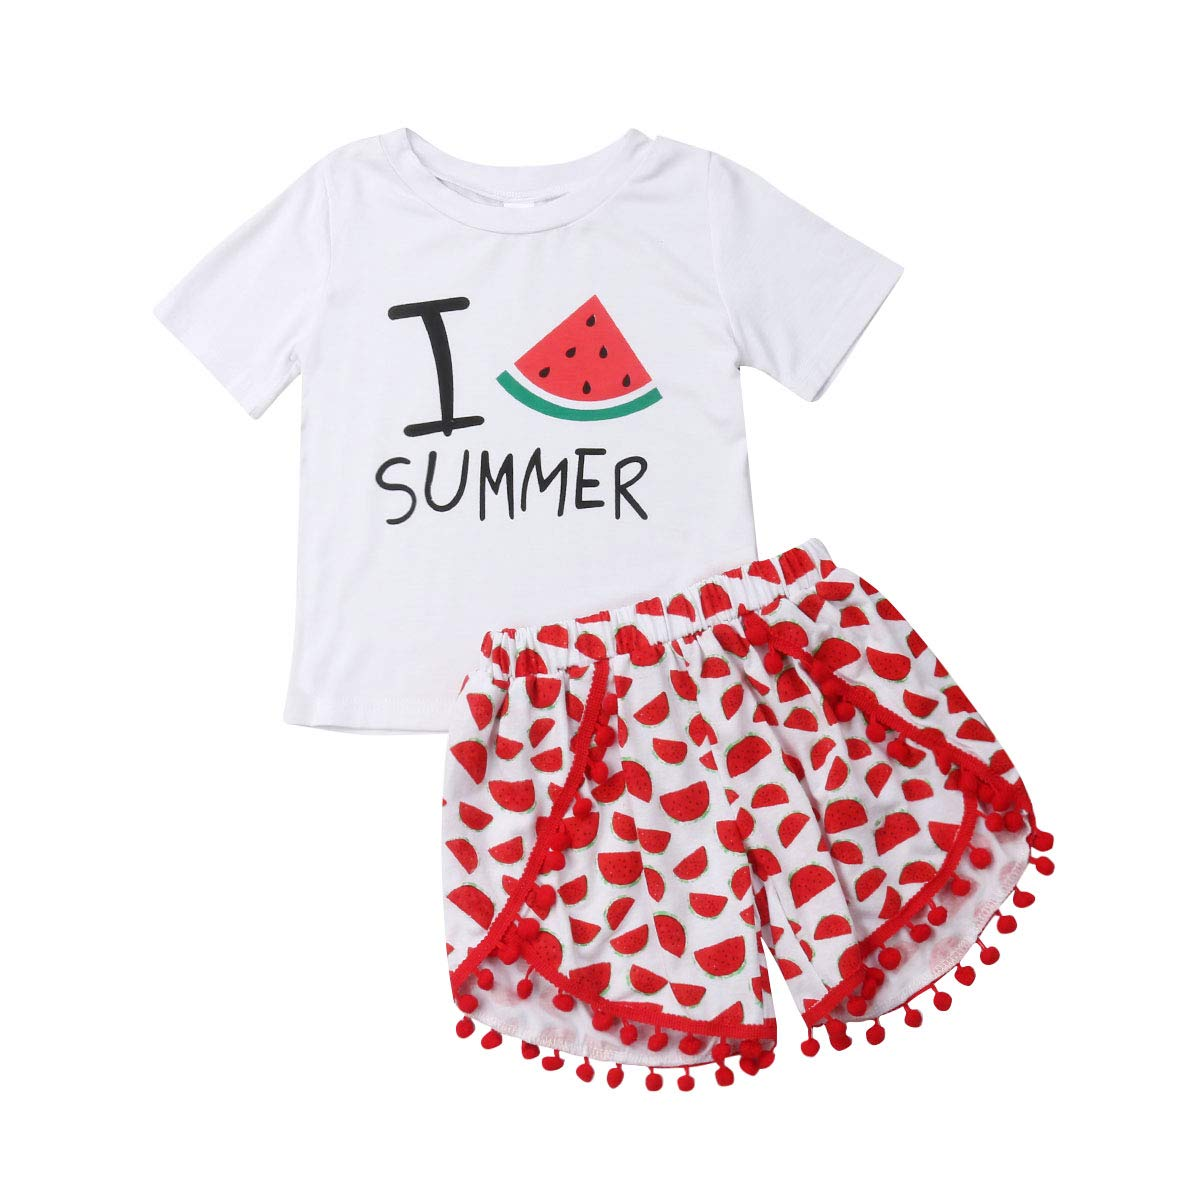 New Carter/'s 3 Piece Girls Summer Outfit 2 Tops Shorts 3T 4T 5T Floral Pom Pom